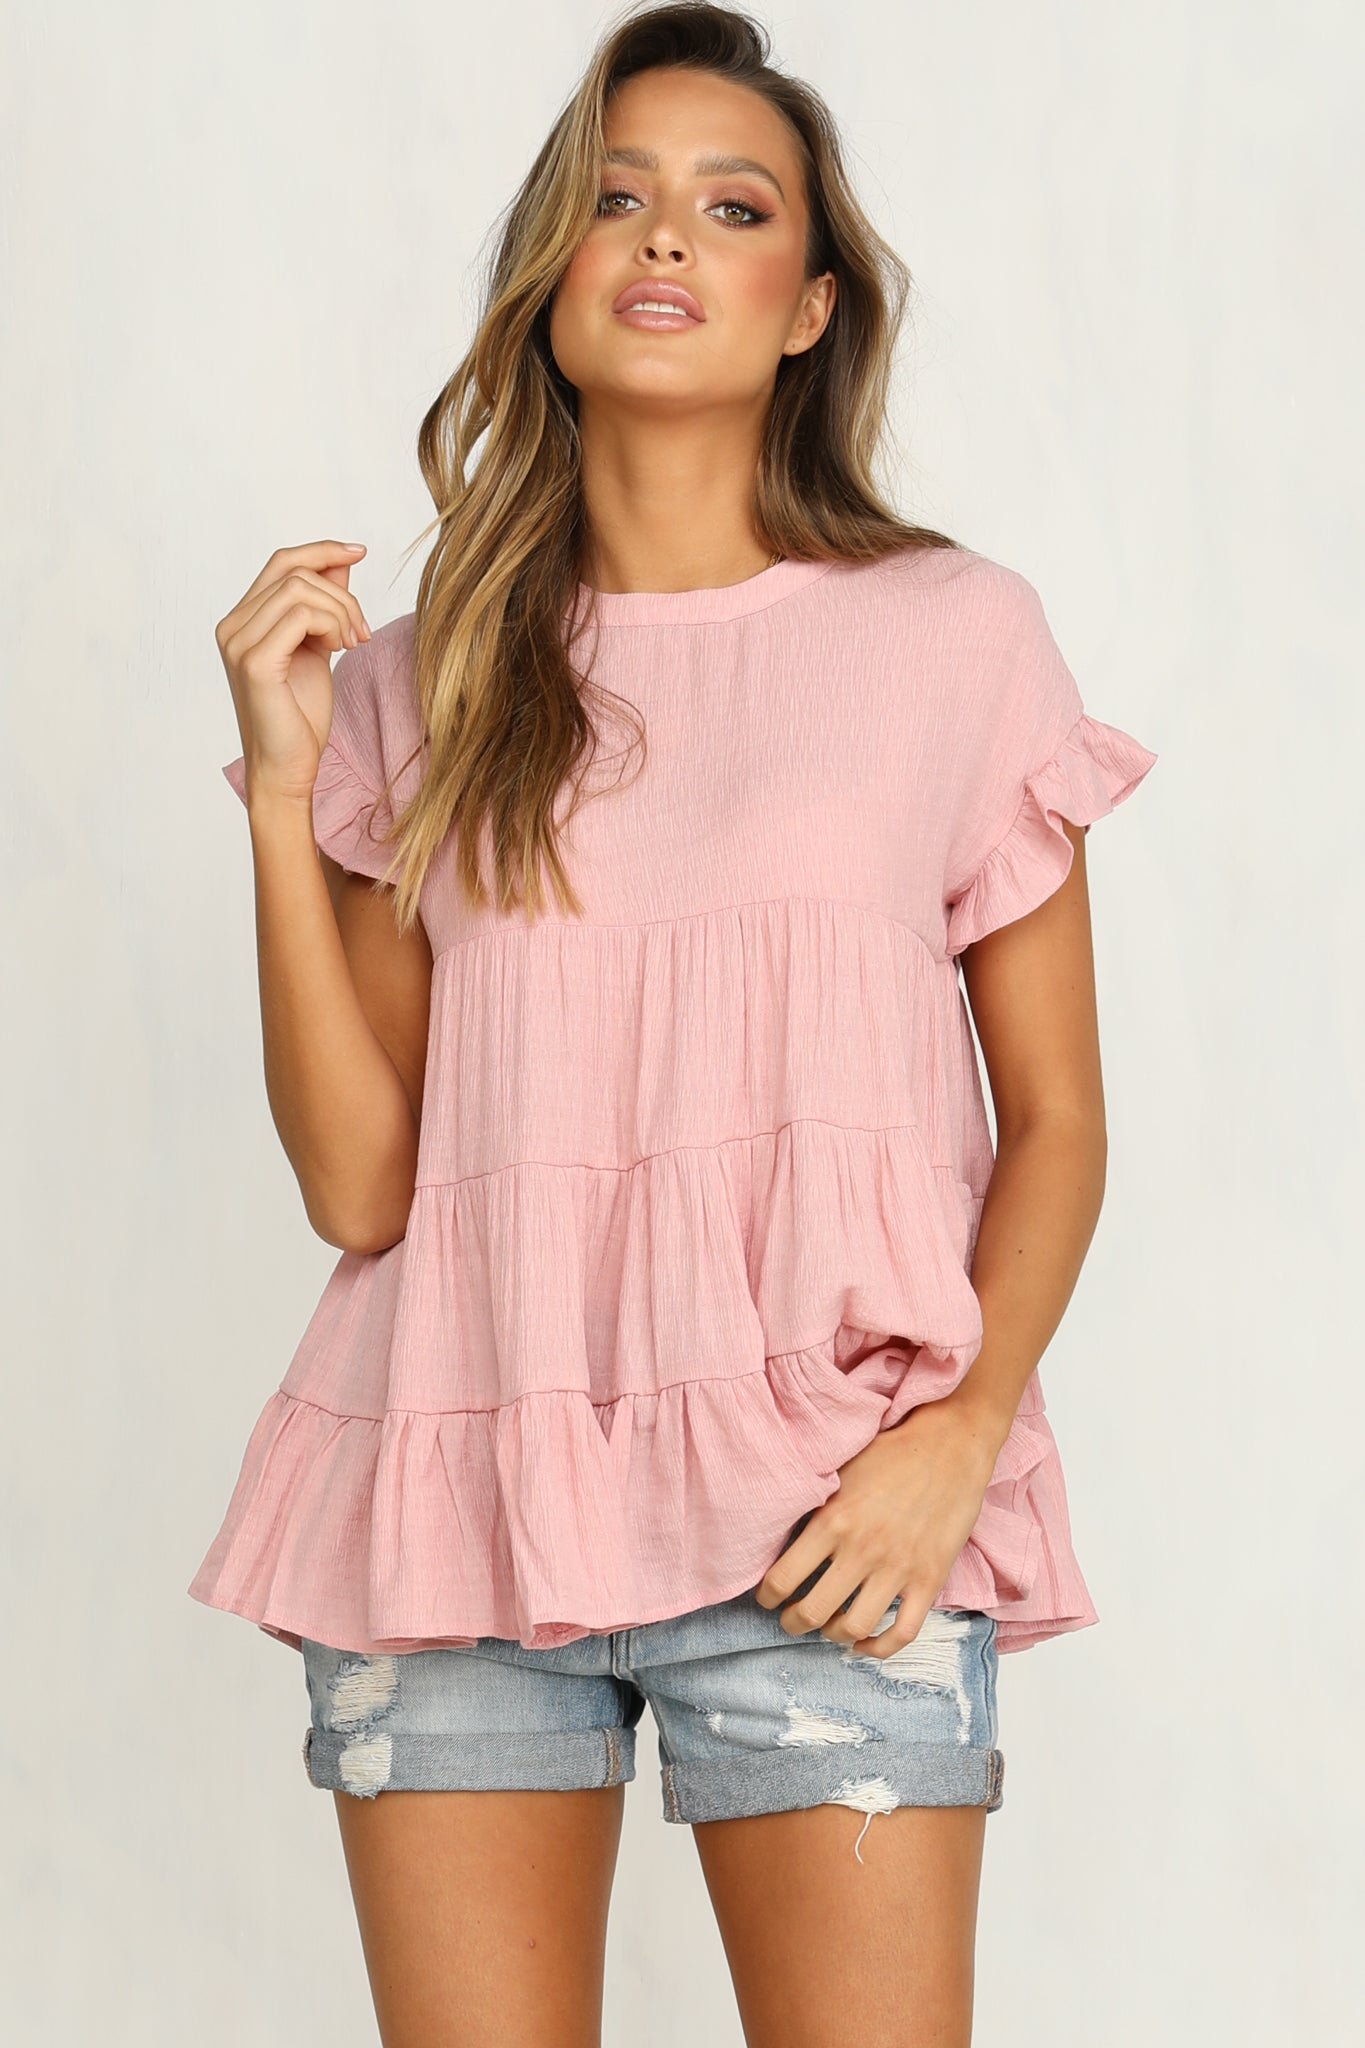 Best Of Me Top (Pink)